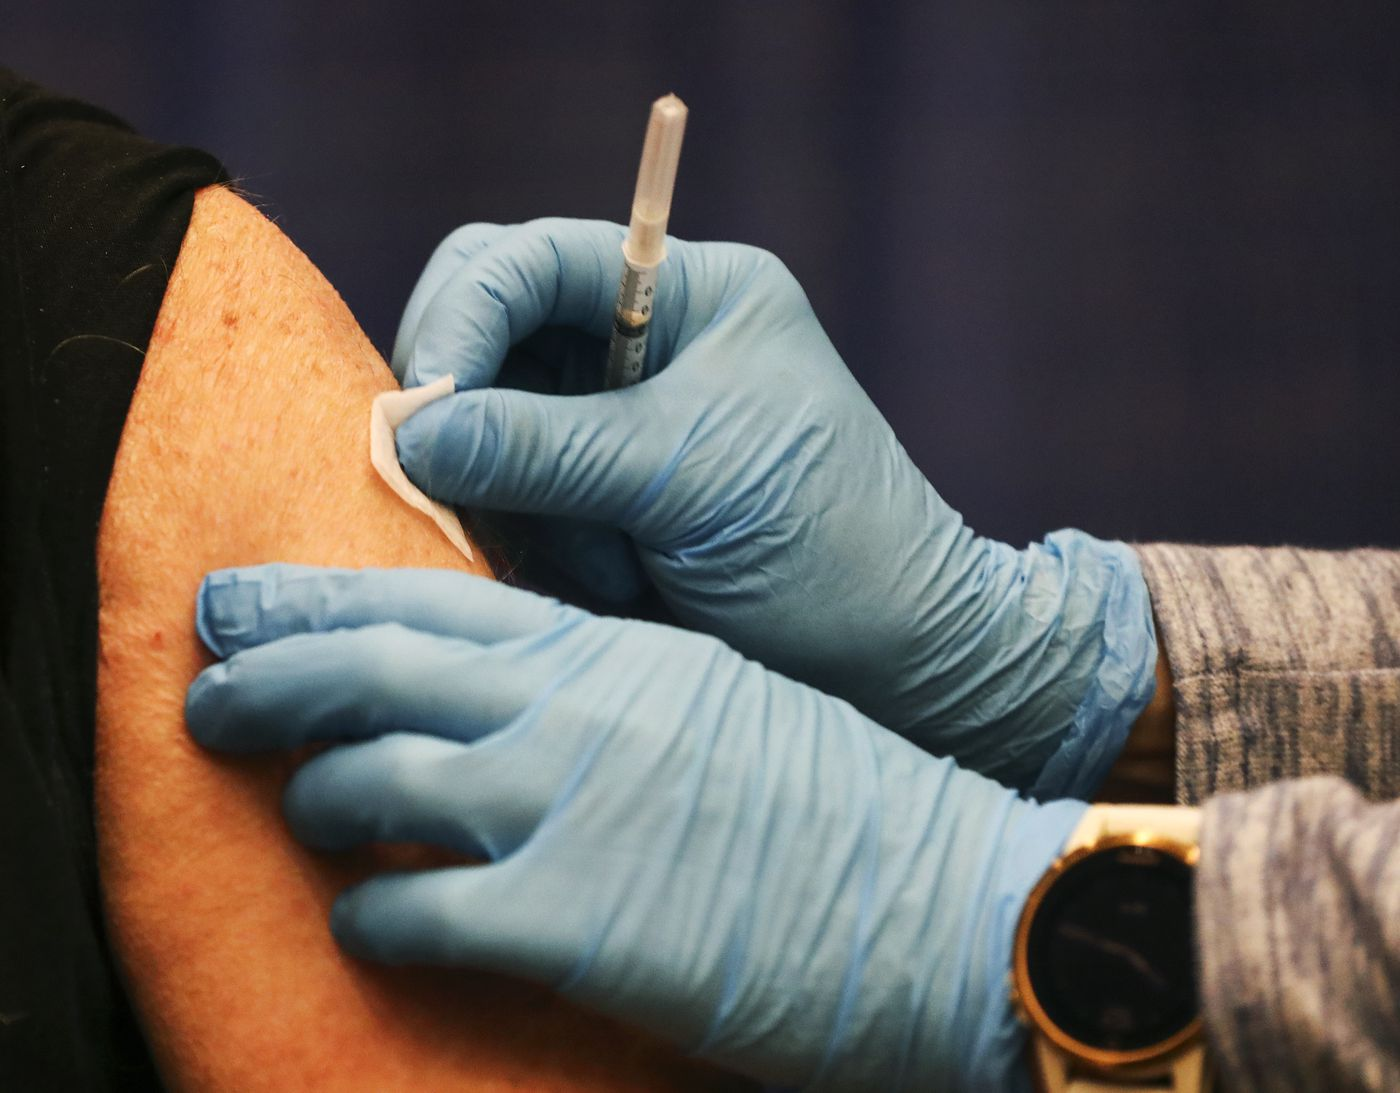 Fairweather, LLC Advanced Nurse Practitioner Jyll Green sanitizes David Stevenson's arm before giving him his first dose of the Pfizer-BioNtech COVID-19 vaccine at the Alaska Airlines Center in Anchorage on Saturday, Jan. 9, 2021. (Emily Mesner / ADN)